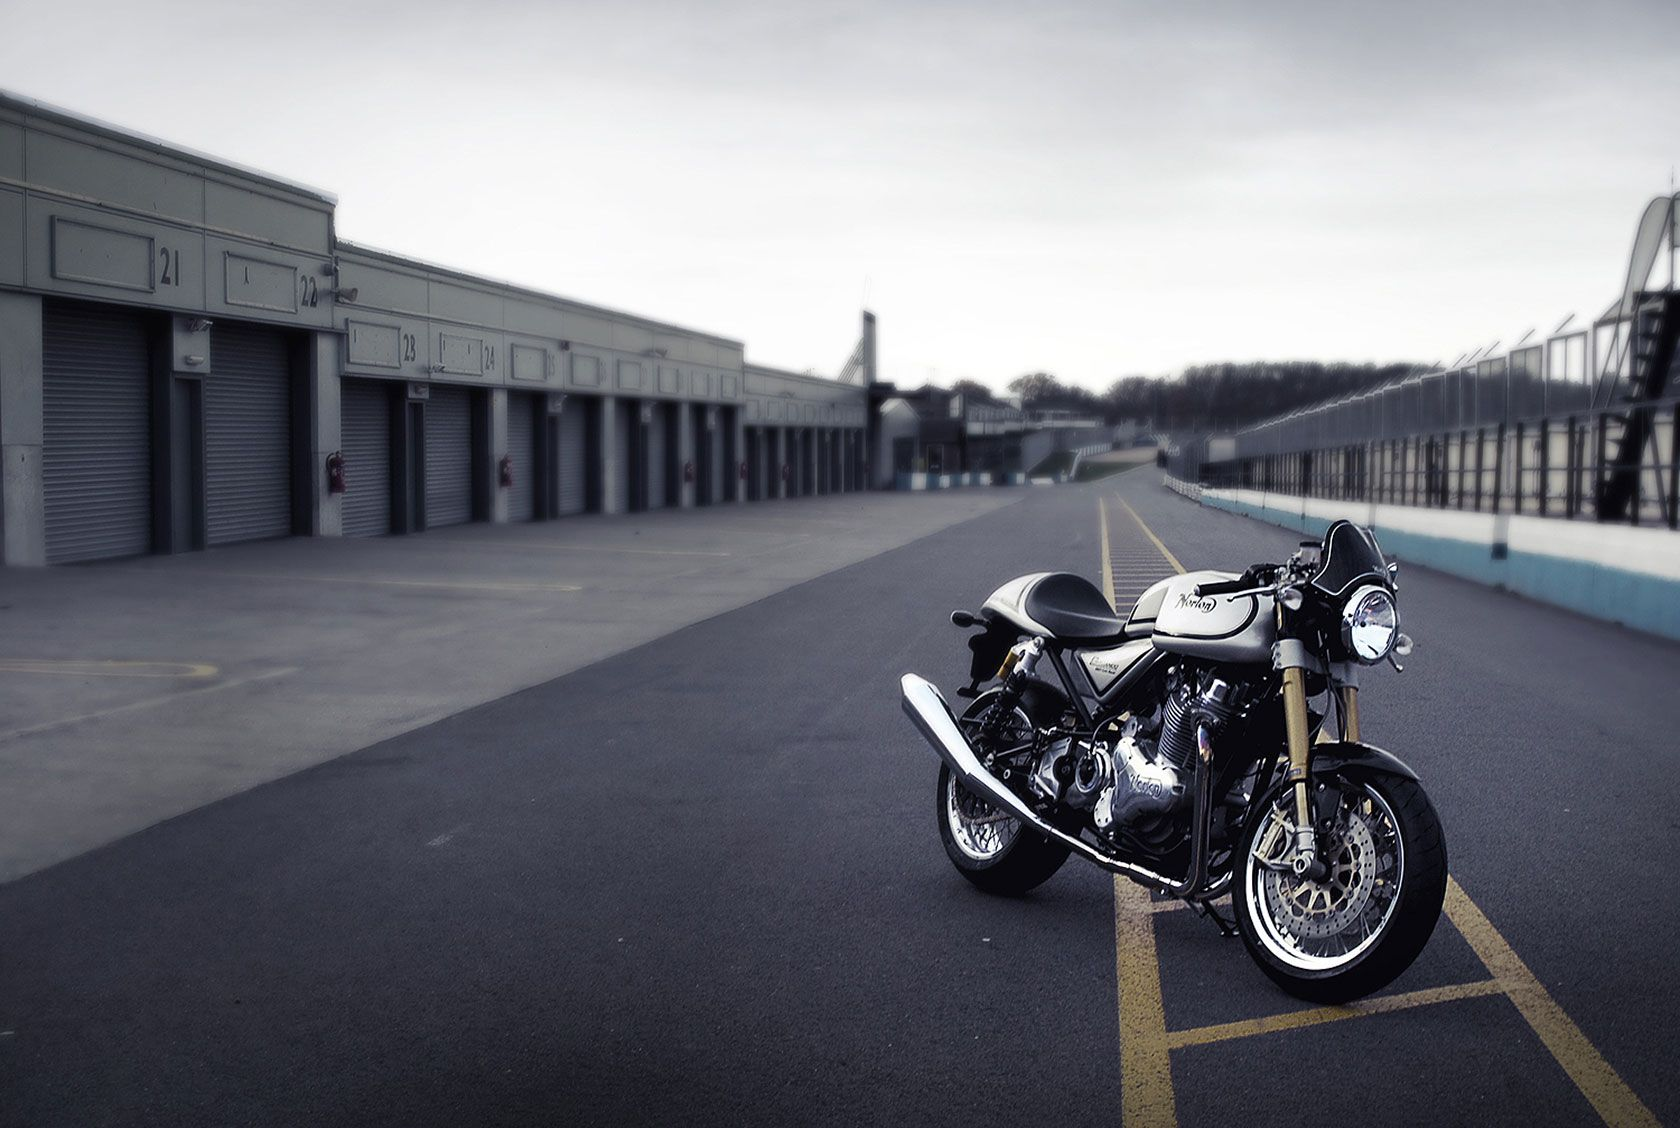 Cafe Racer Hd Wallpapers Top Free Cafe Racer Hd